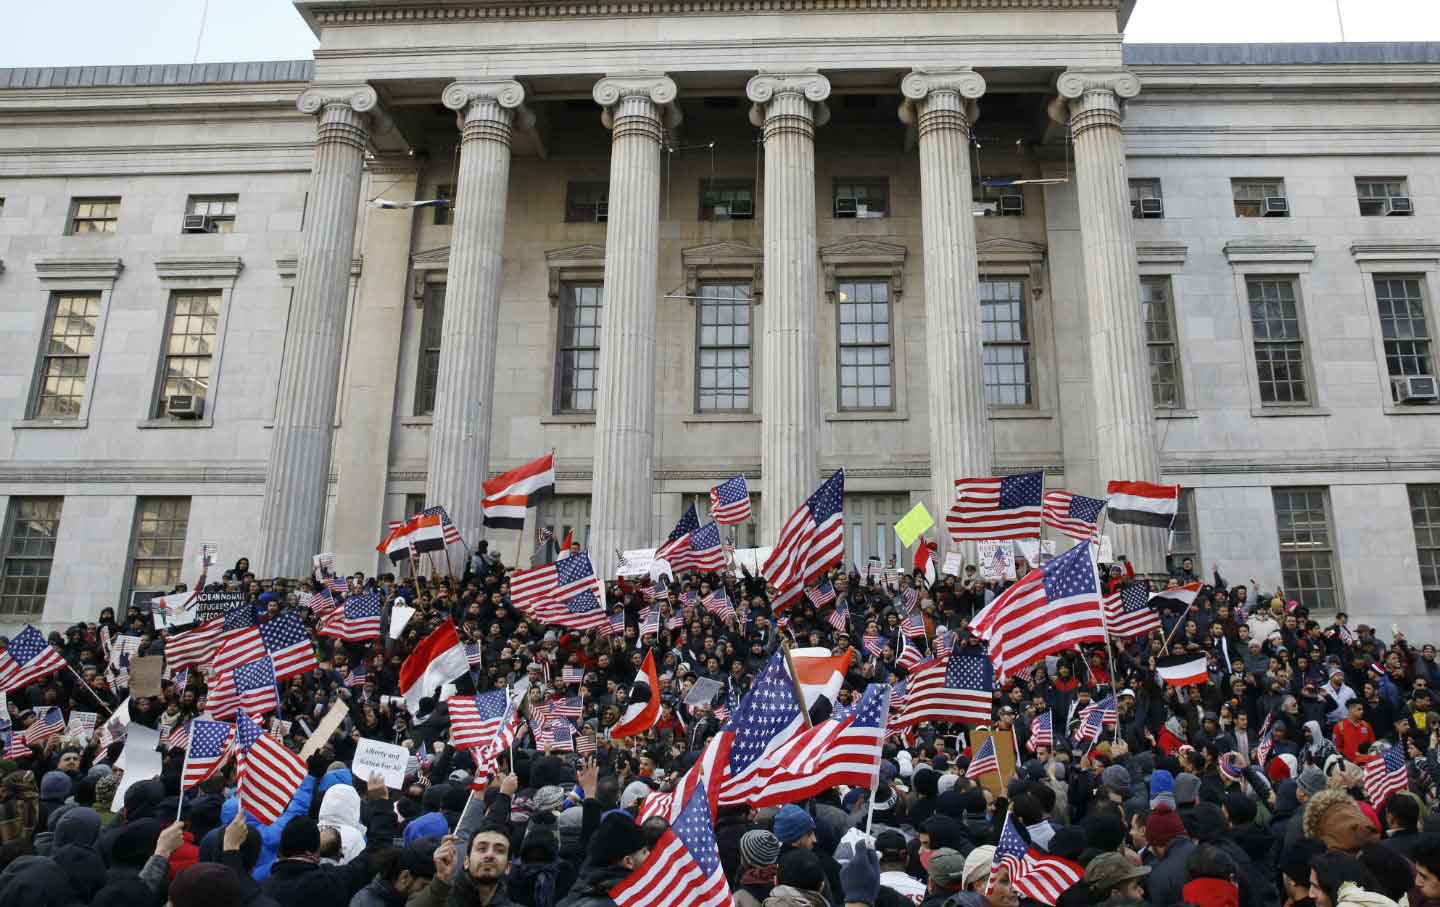 Borough Hall Trump Ban Protest